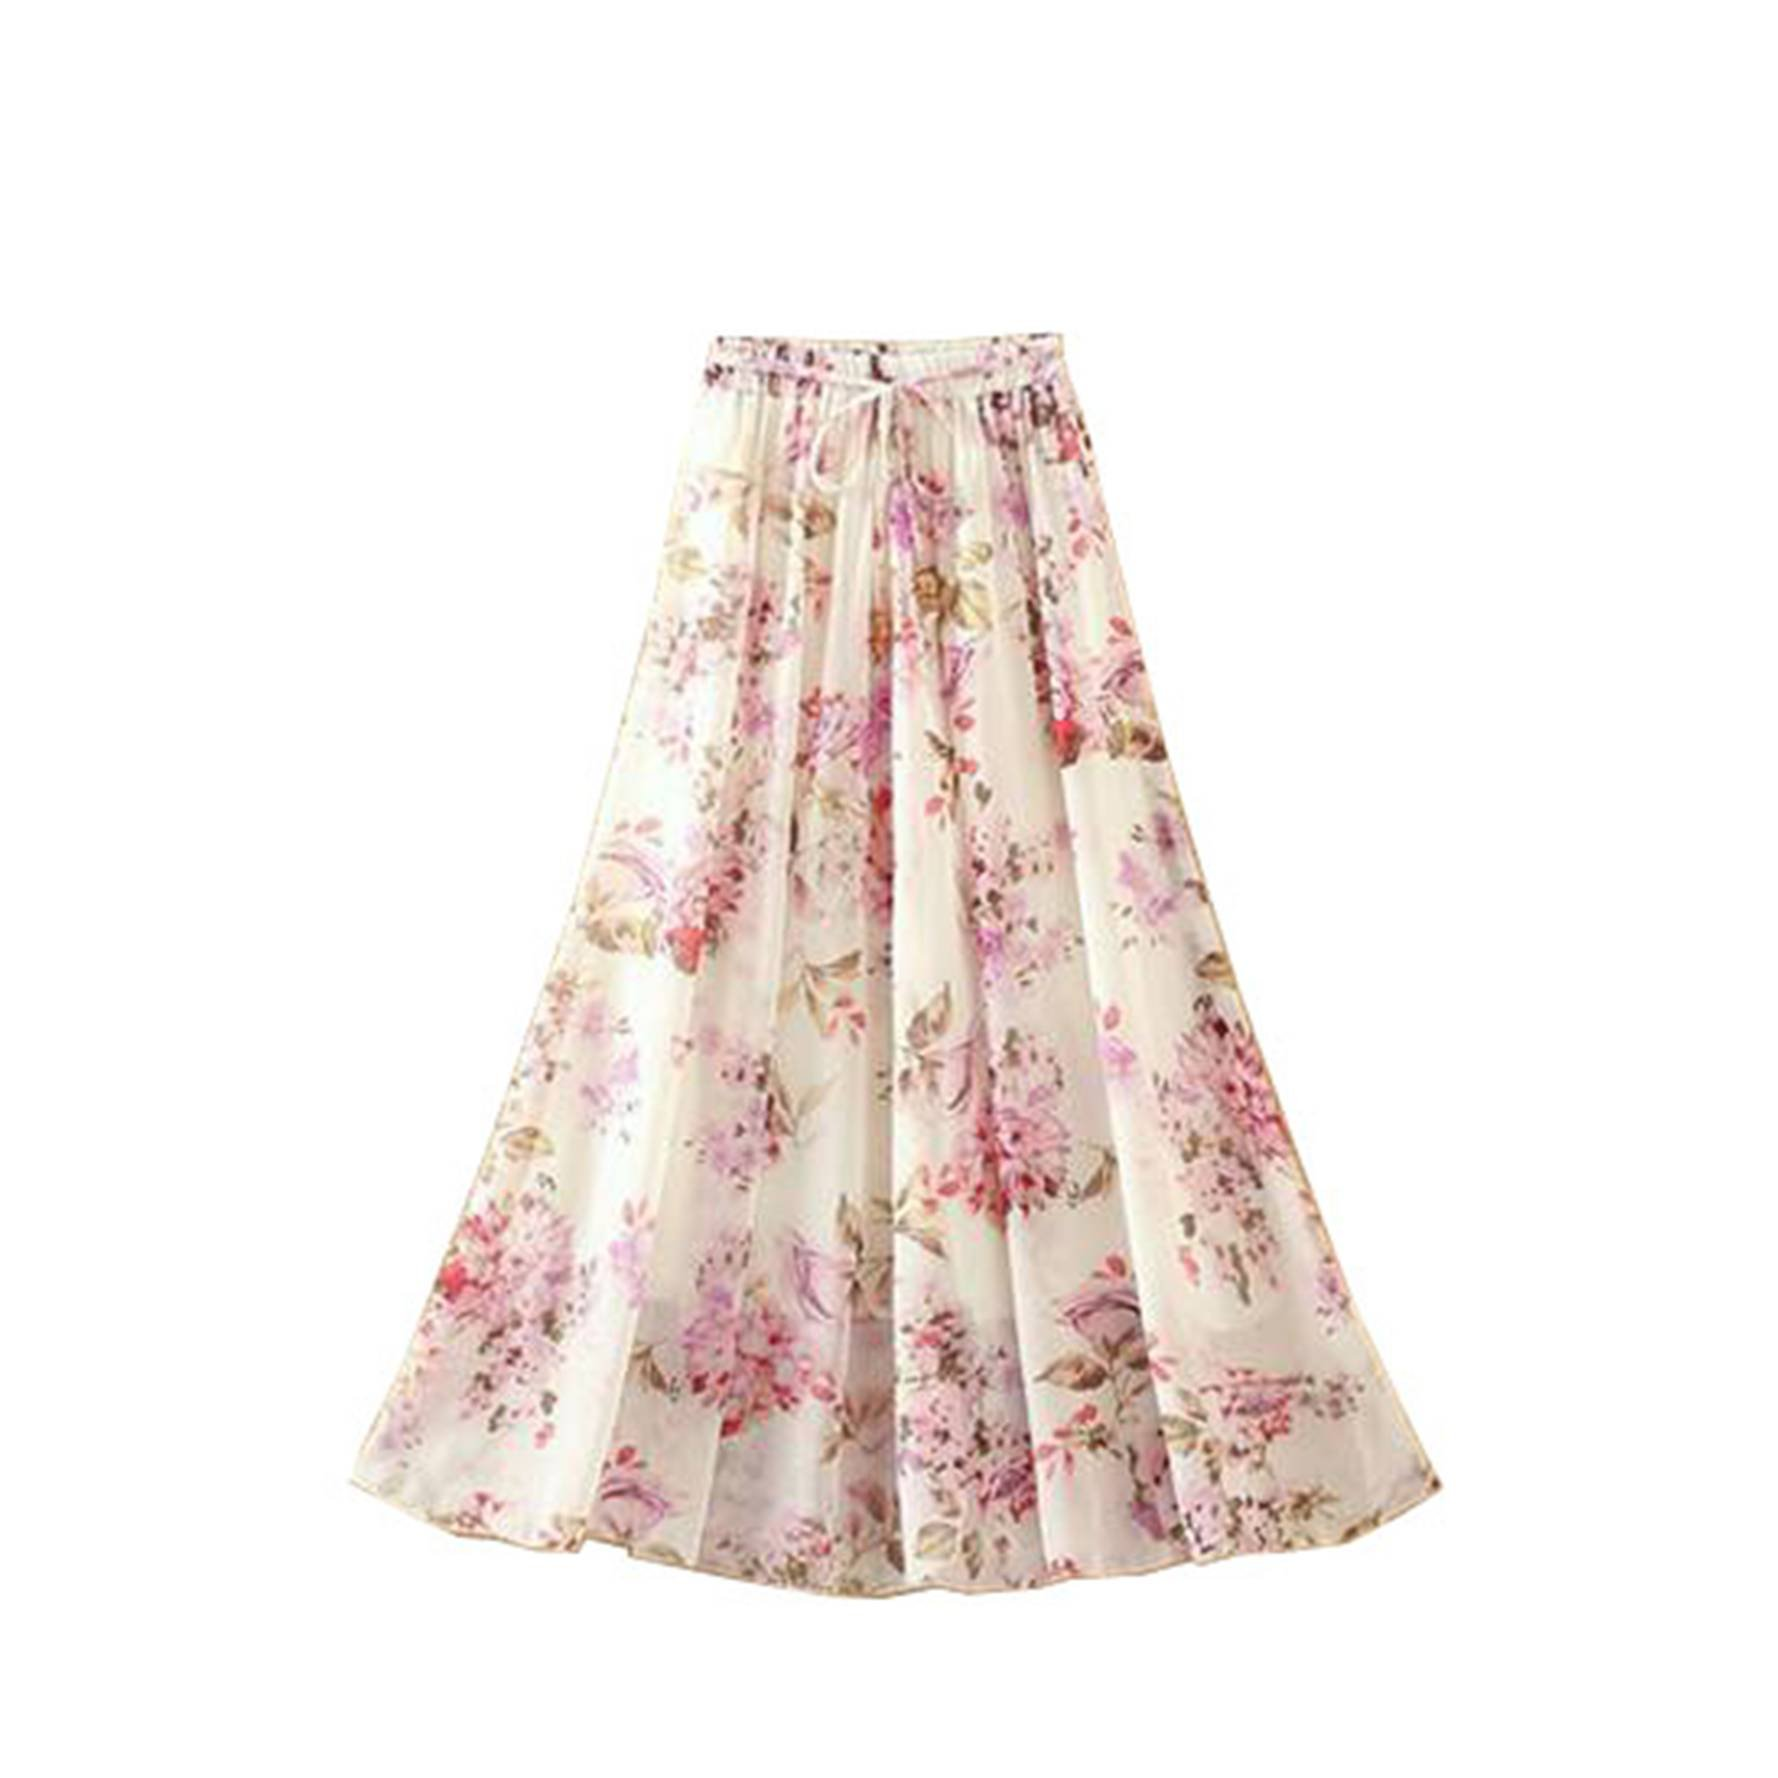 Kaxuyiiy Women's Boho Flower Print 2 Layer Beach Party Maxi Long Pleated Skirt (Pink Flower)